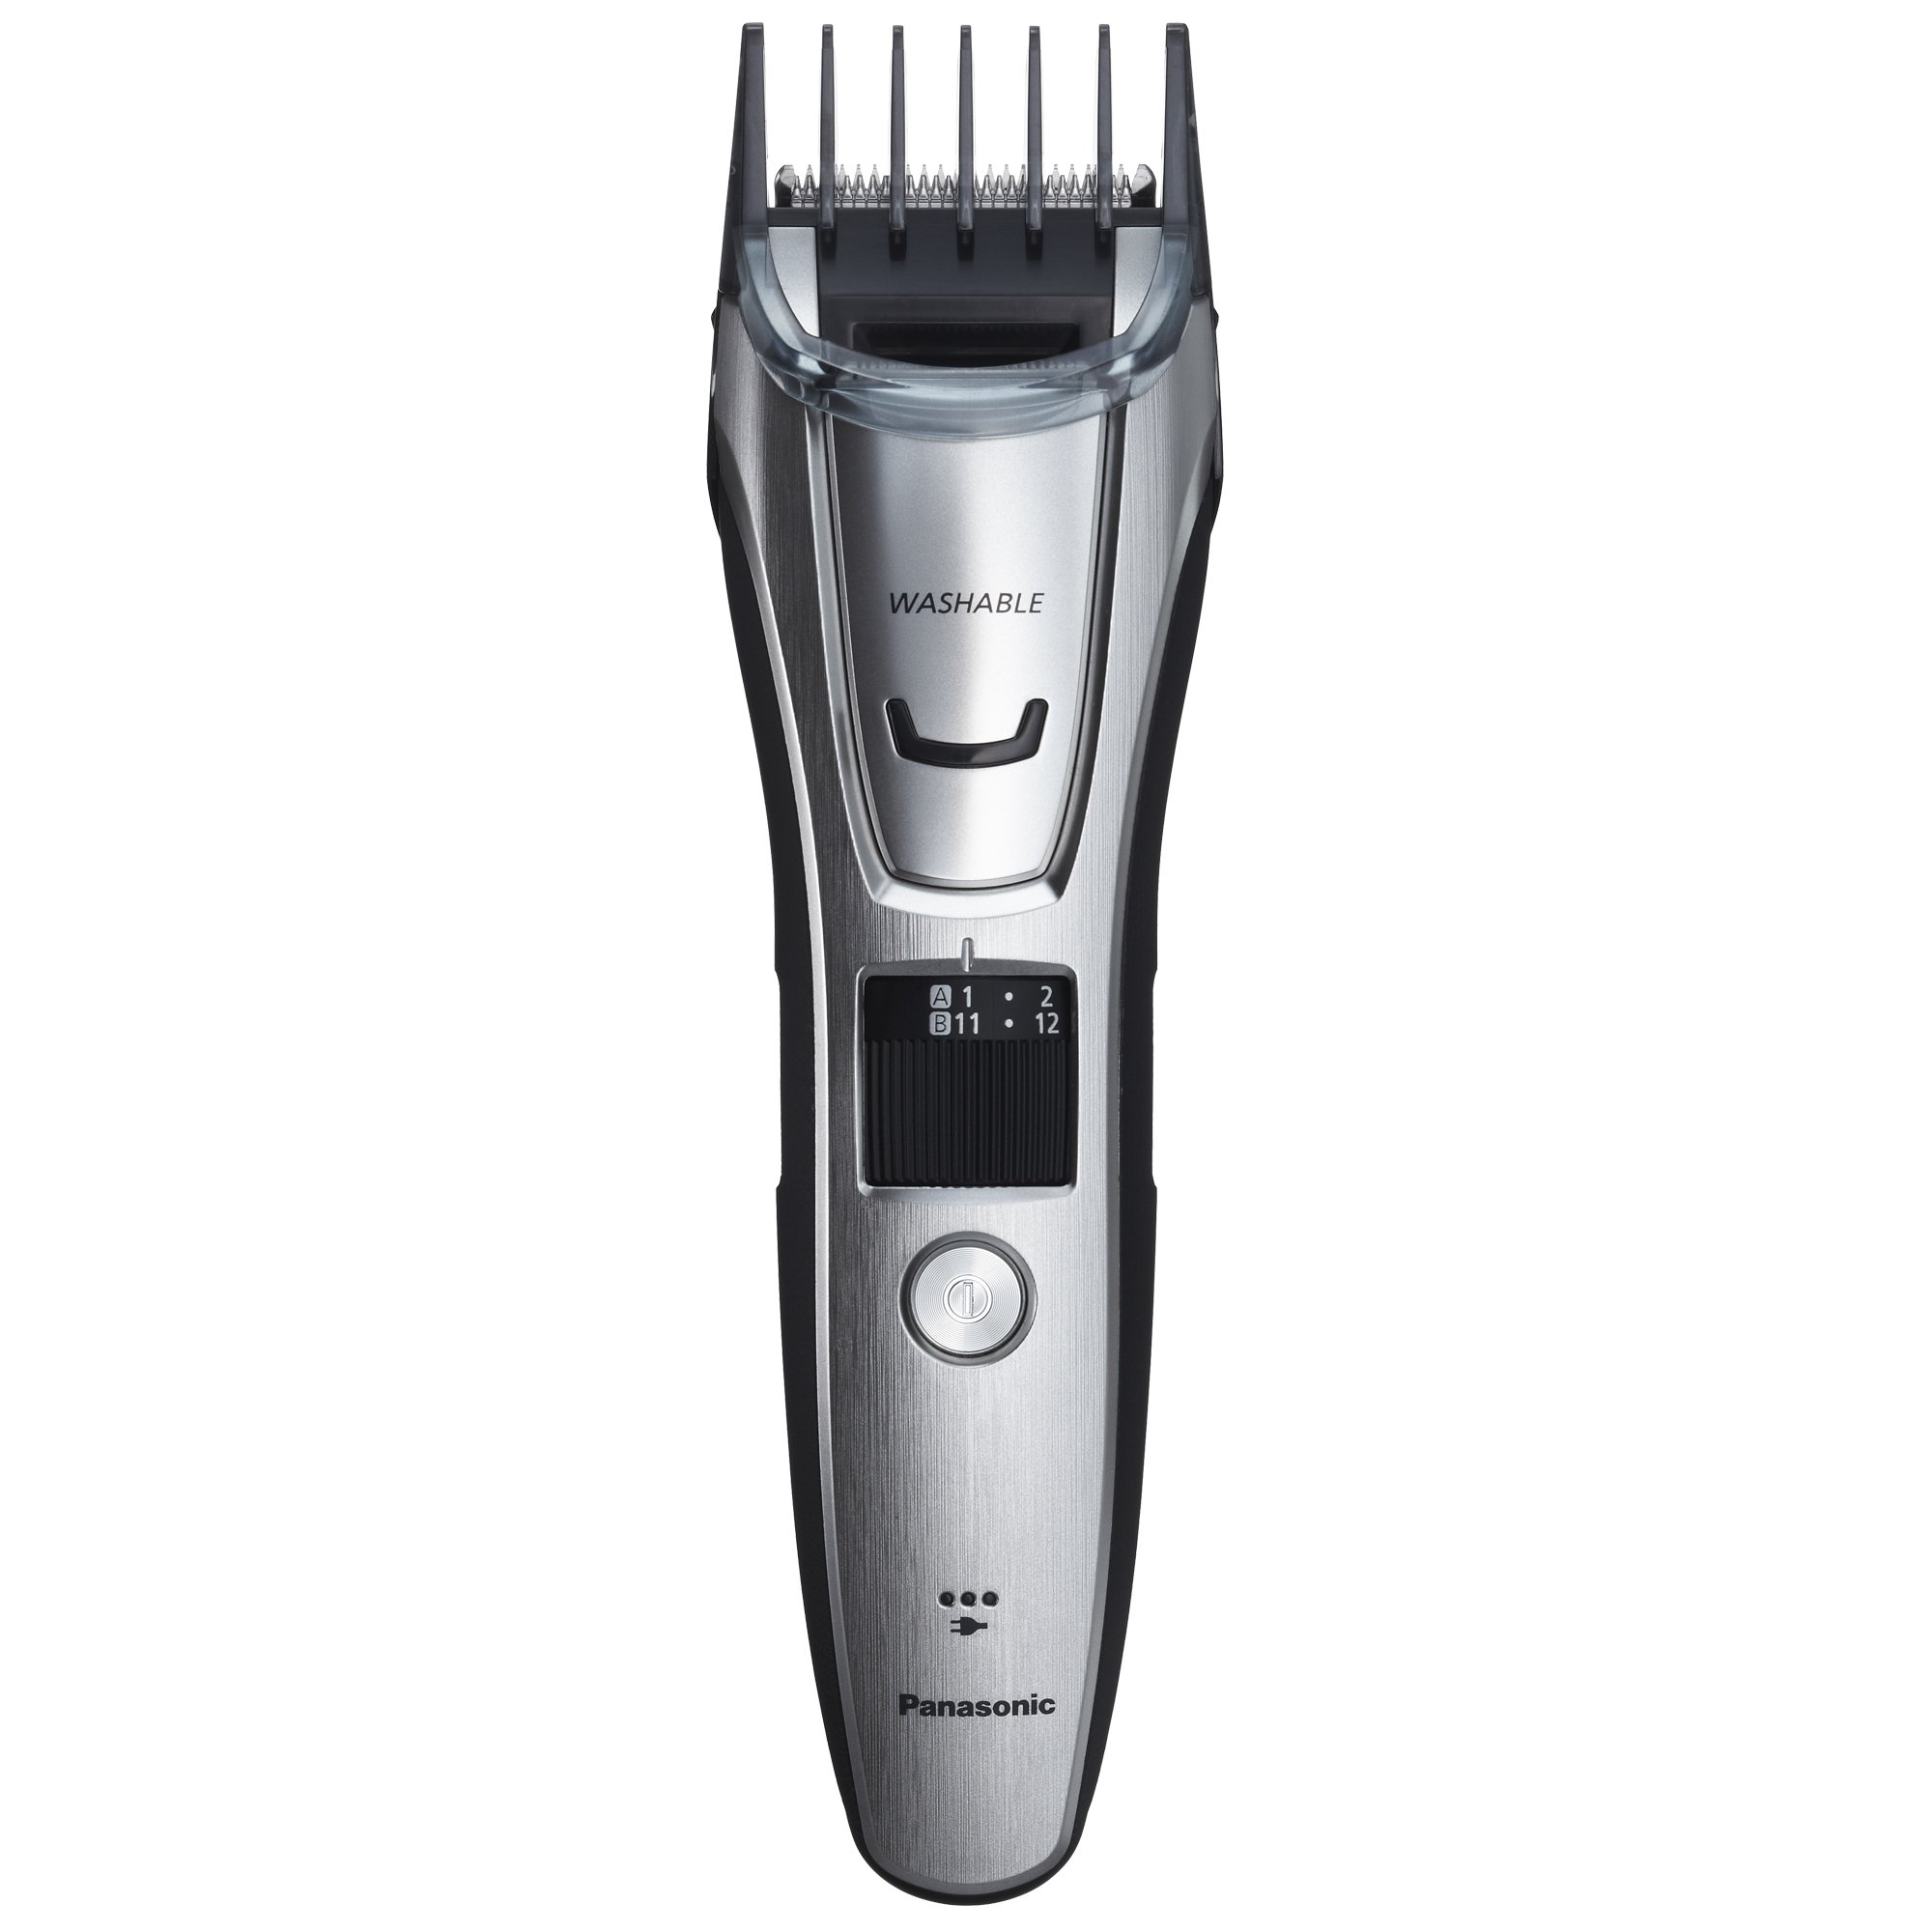 Panasonic ER-GB80-S Body and Beard Trimmer, Hair Clipper, Men's, Cordless/Corded Operation with 3 Comb Attachments and 39 Adjustable Trim Settings, Washable by Panasonic (Image #5)